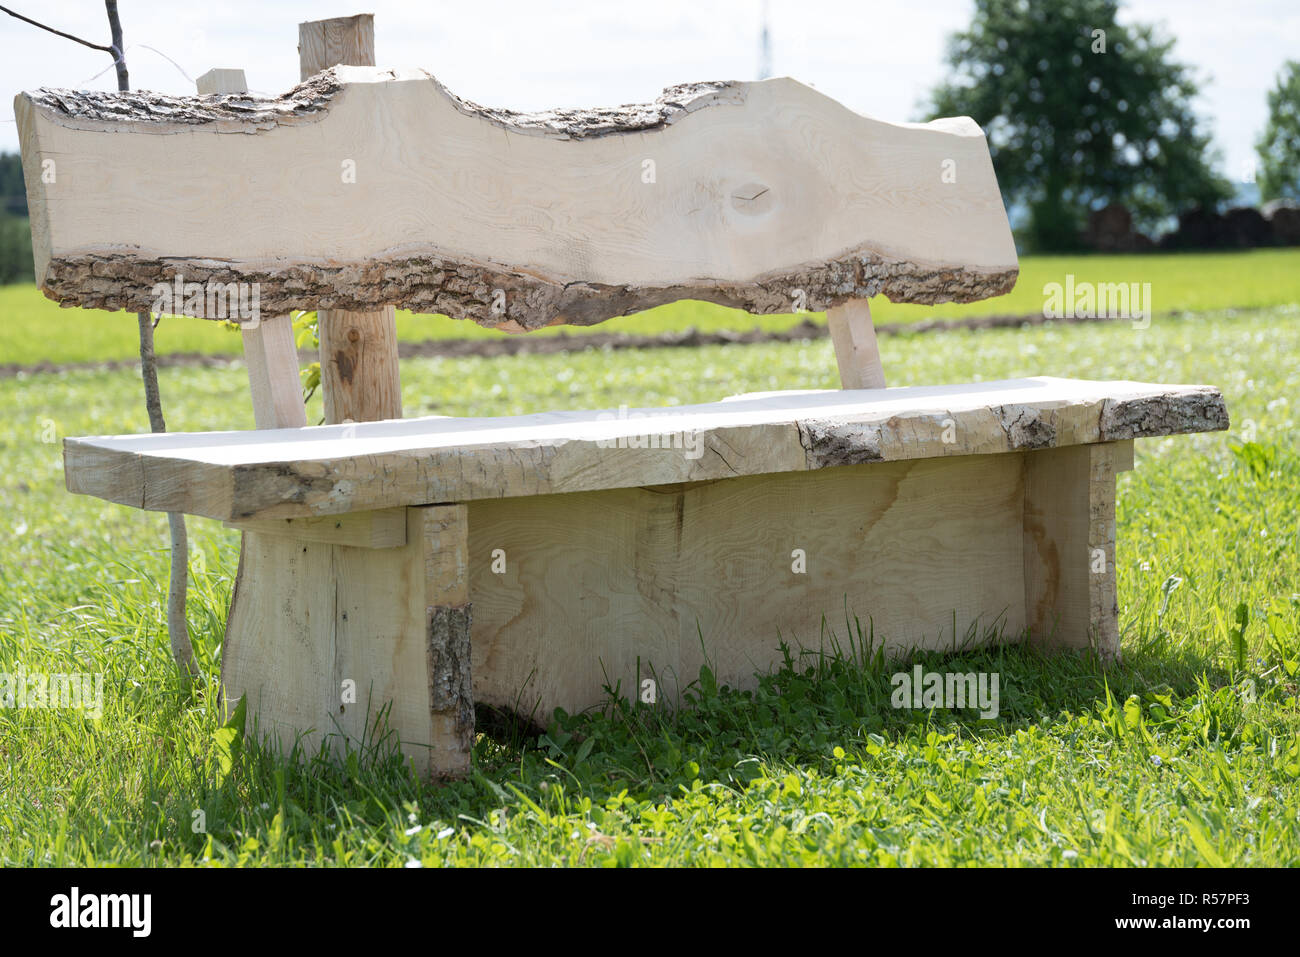 Remarkable Rustic Garden Bench Made Of Solid Wood Stock Photo Ncnpc Chair Design For Home Ncnpcorg